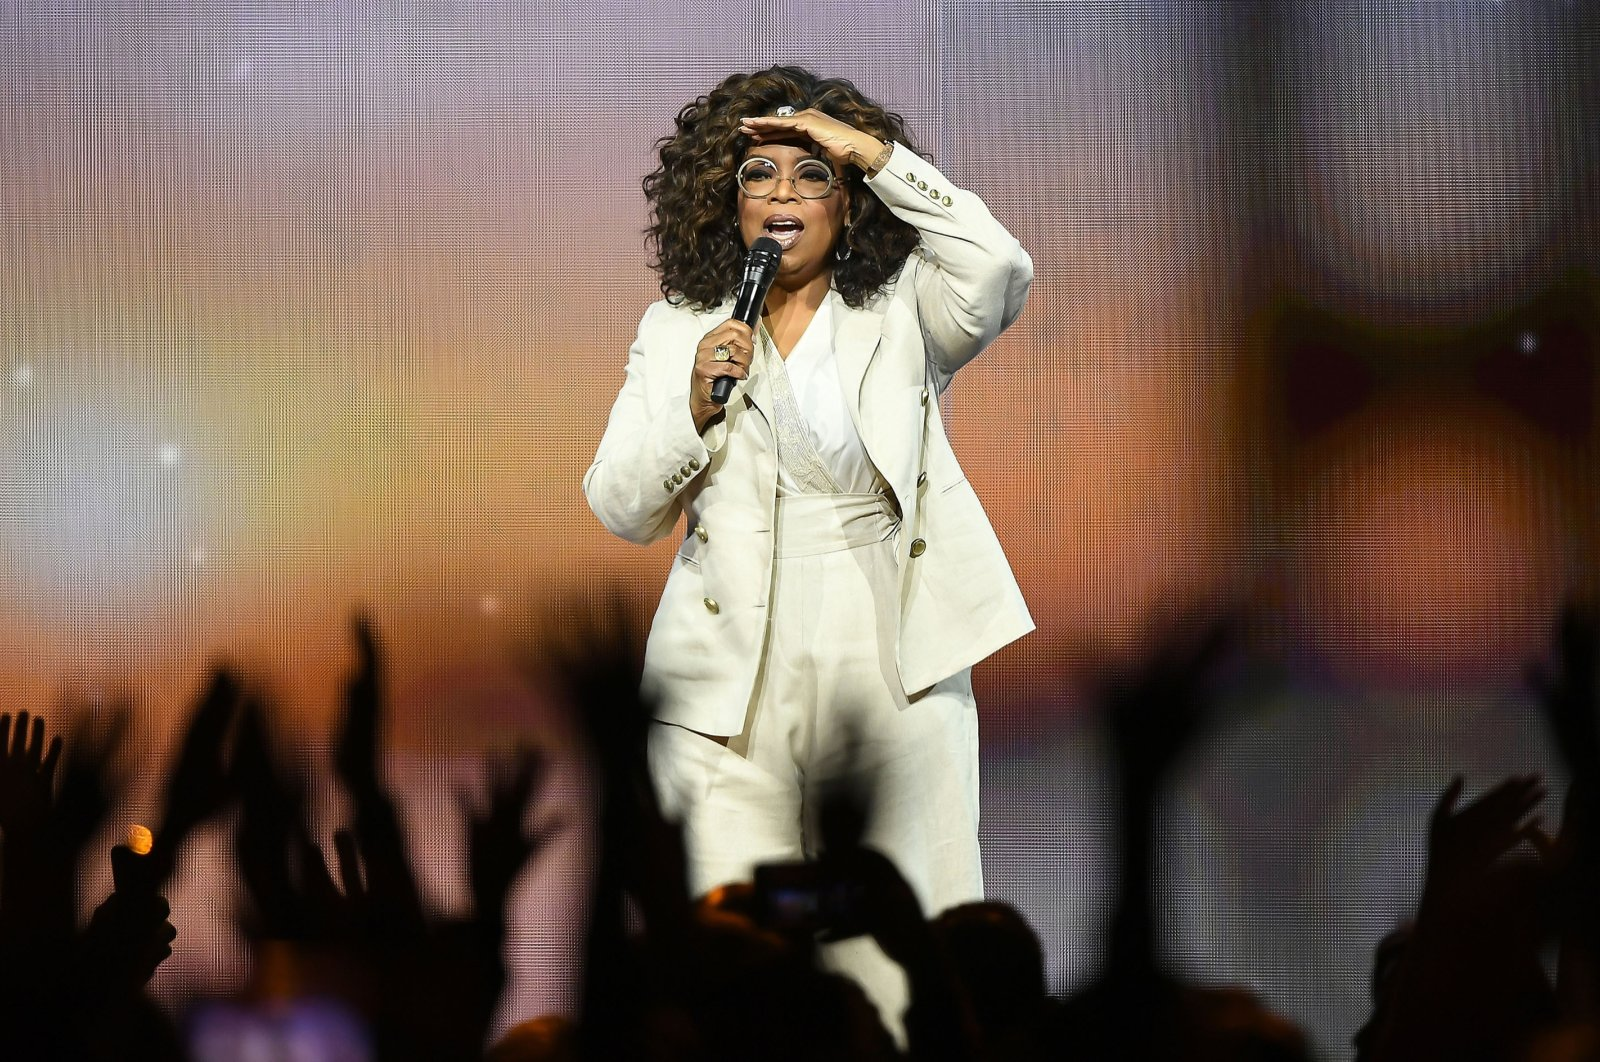 Oprah Winfrey speaks during Oprah's 2020 Vision: Your Life in Focus Tour presented by WW (Weight Watchers Reimagined) at Chase Center on February 22, 2020 in San Francisco, California.  (Getty Images)